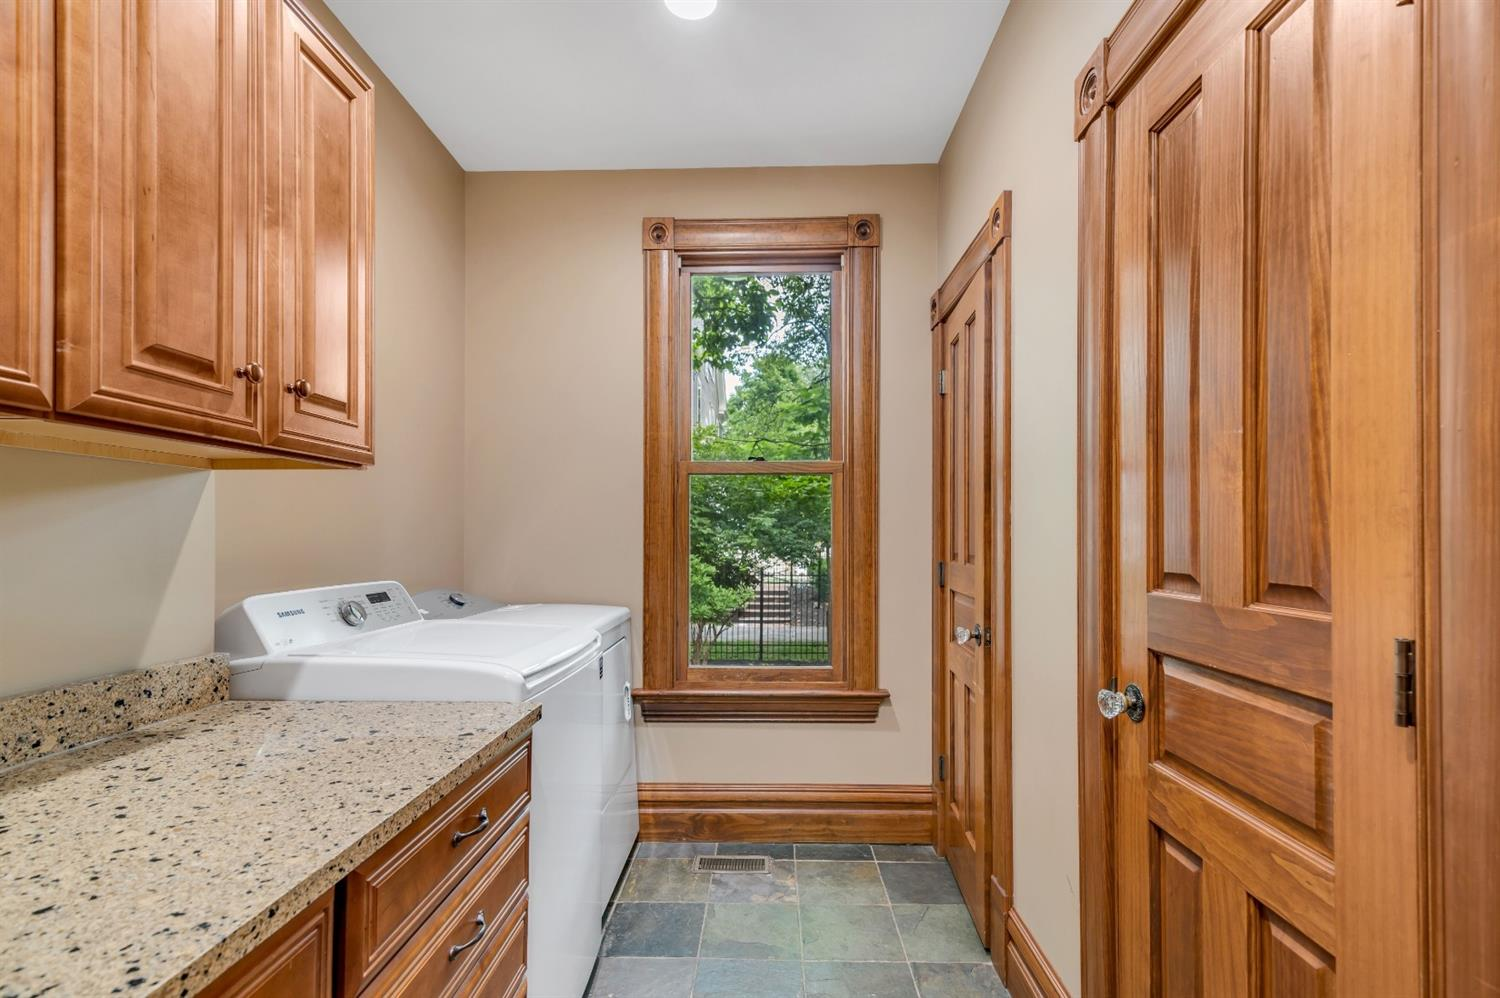 This home offers 1st and 2nd floor laundry rooms.  This 1st floor laundry is spacious and offers the room you need for organizing.